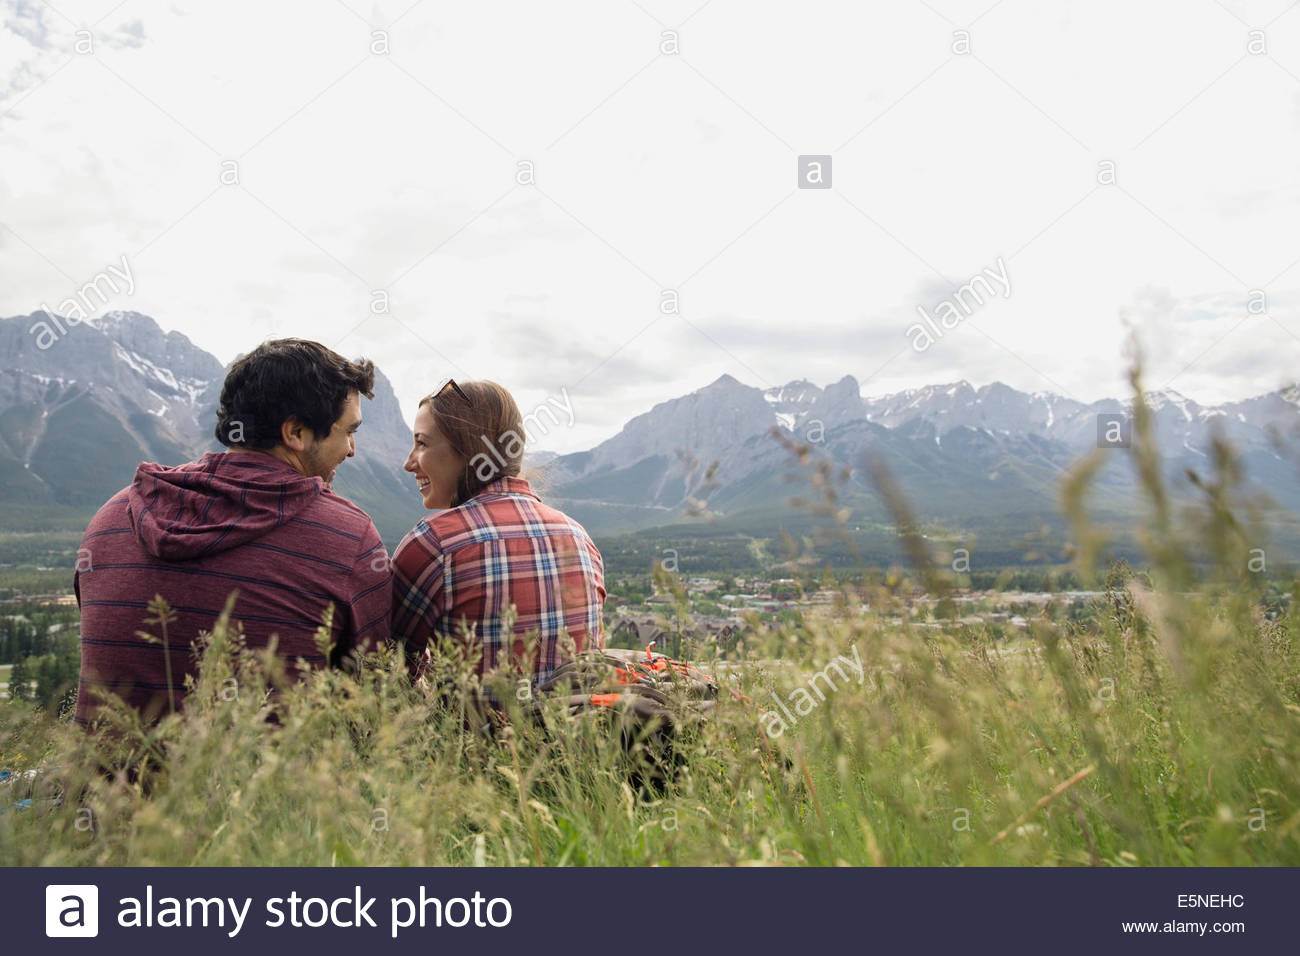 Couple sitting in grass with mountain view Stock Photo